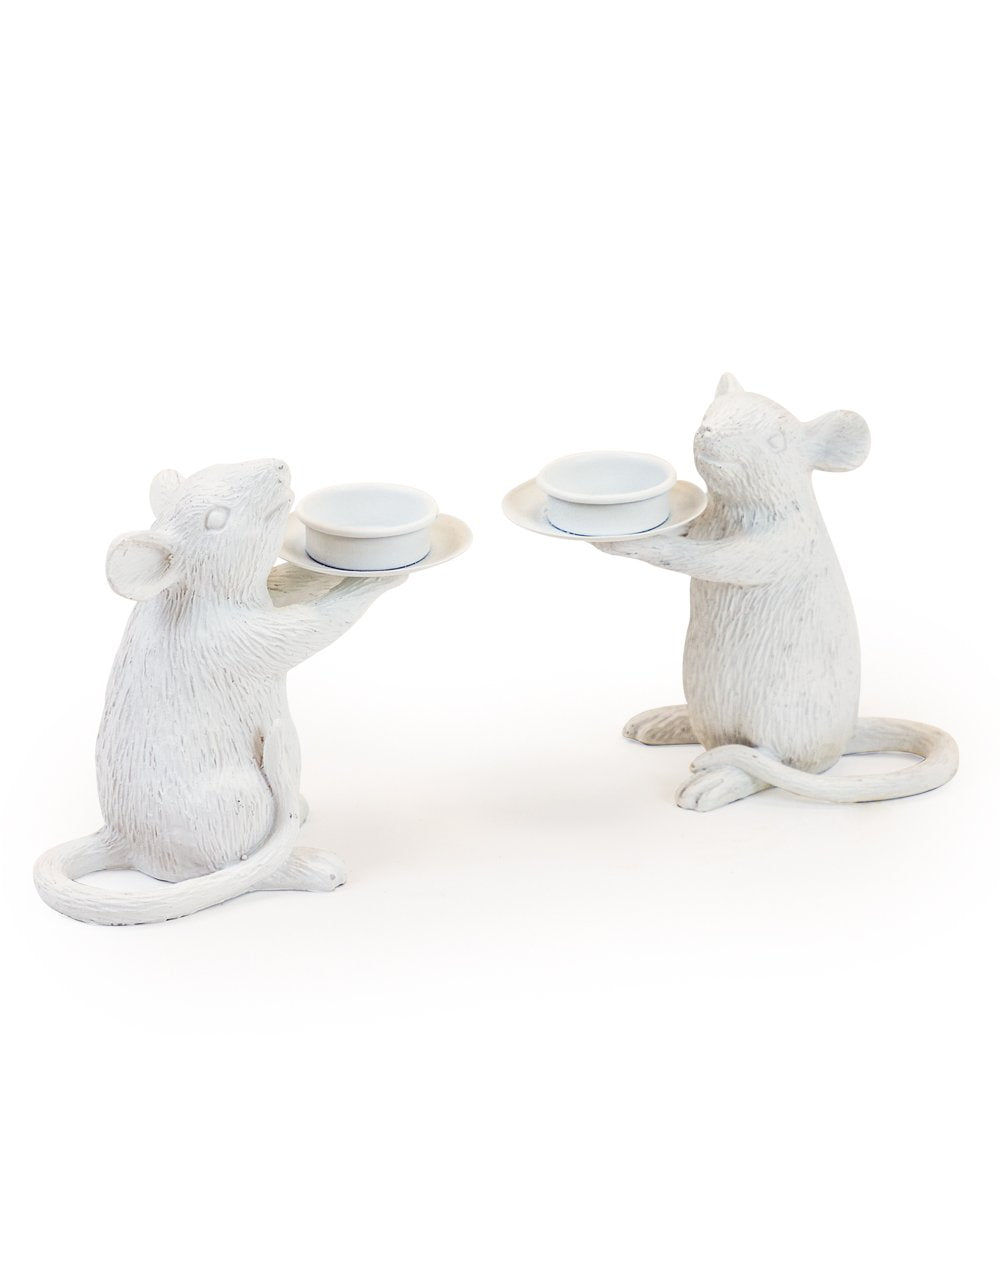 White Mice Tea Light Holders set of two